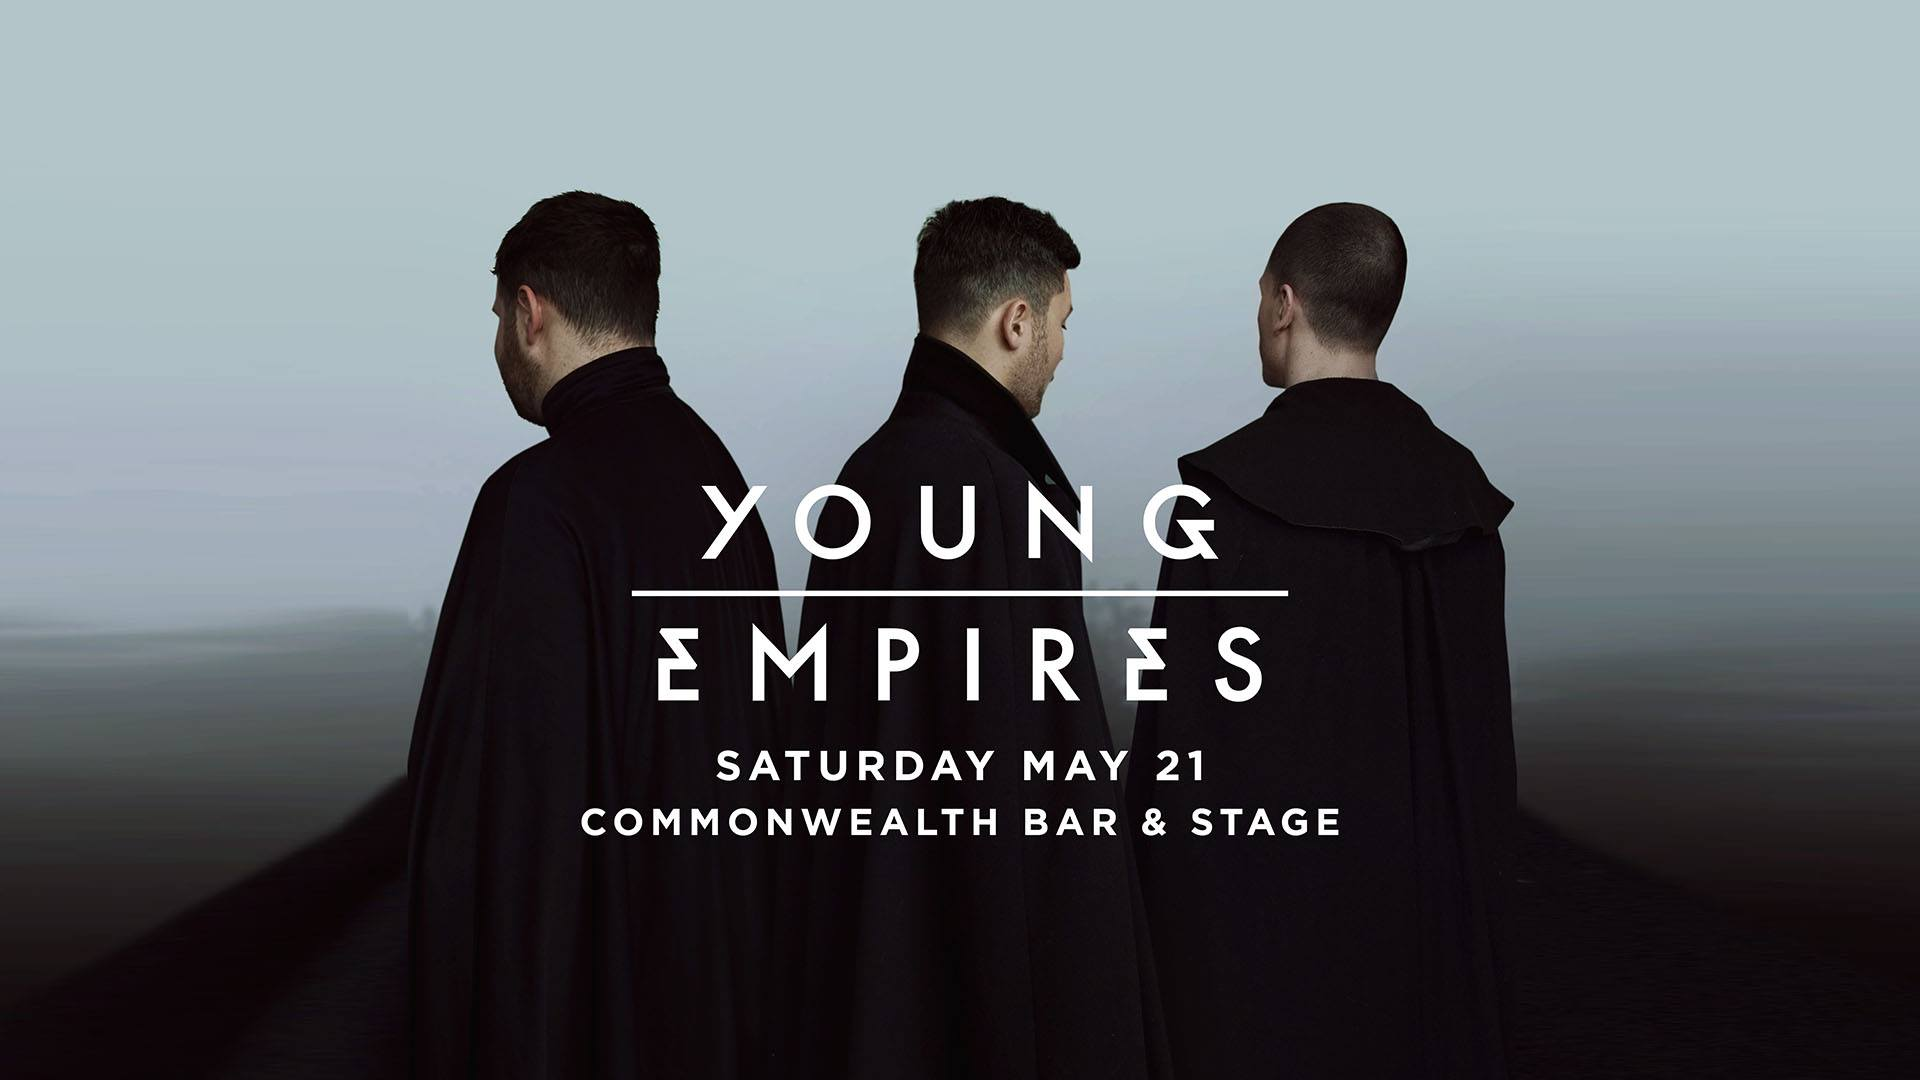 Image: Young Empires